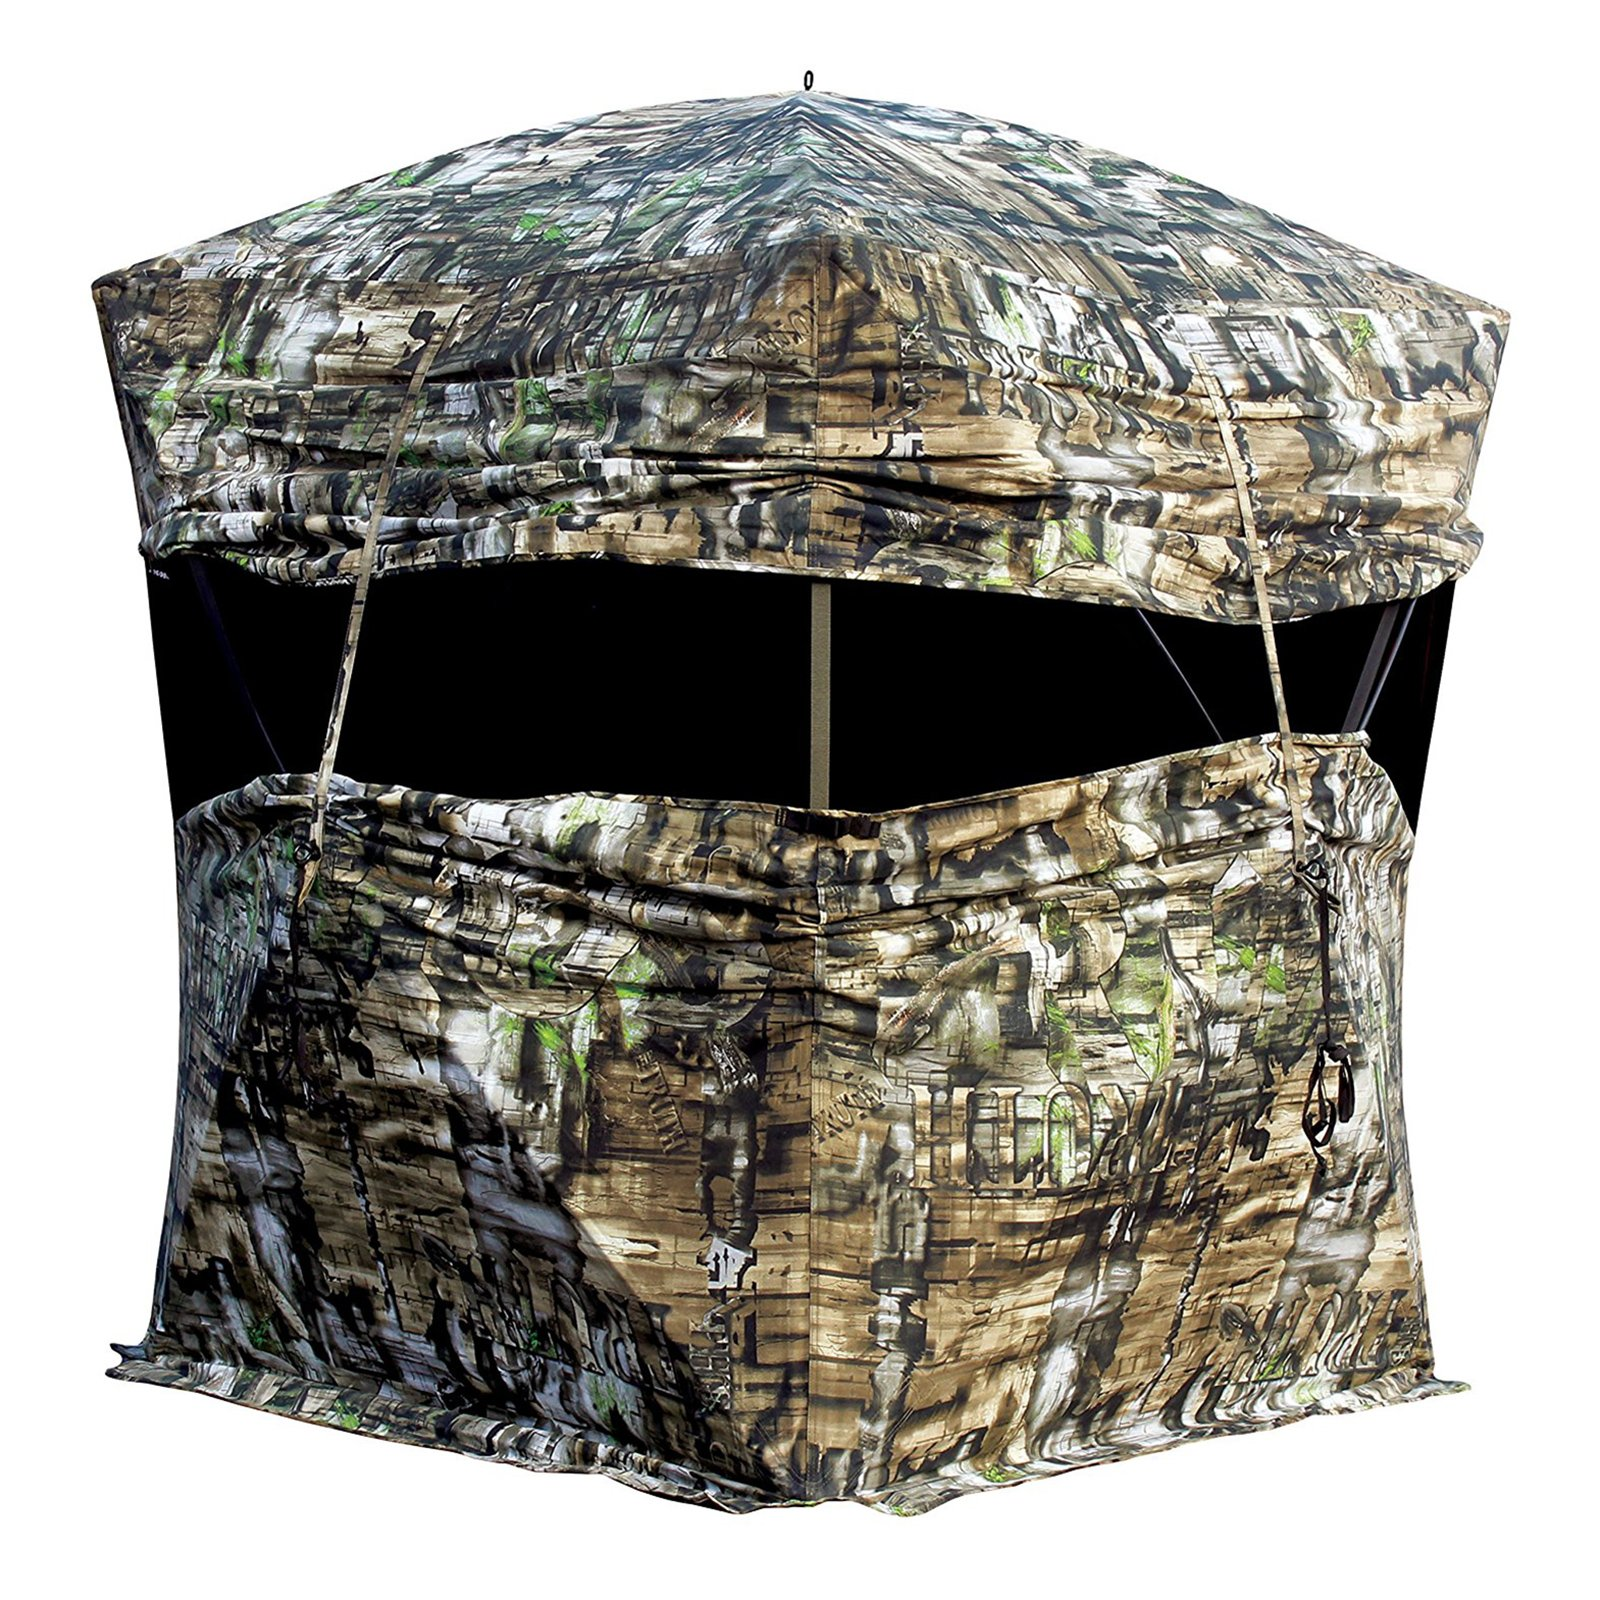 url cuscus us double frame hunting blinds your calls shop primos net pack getimage way shld bull